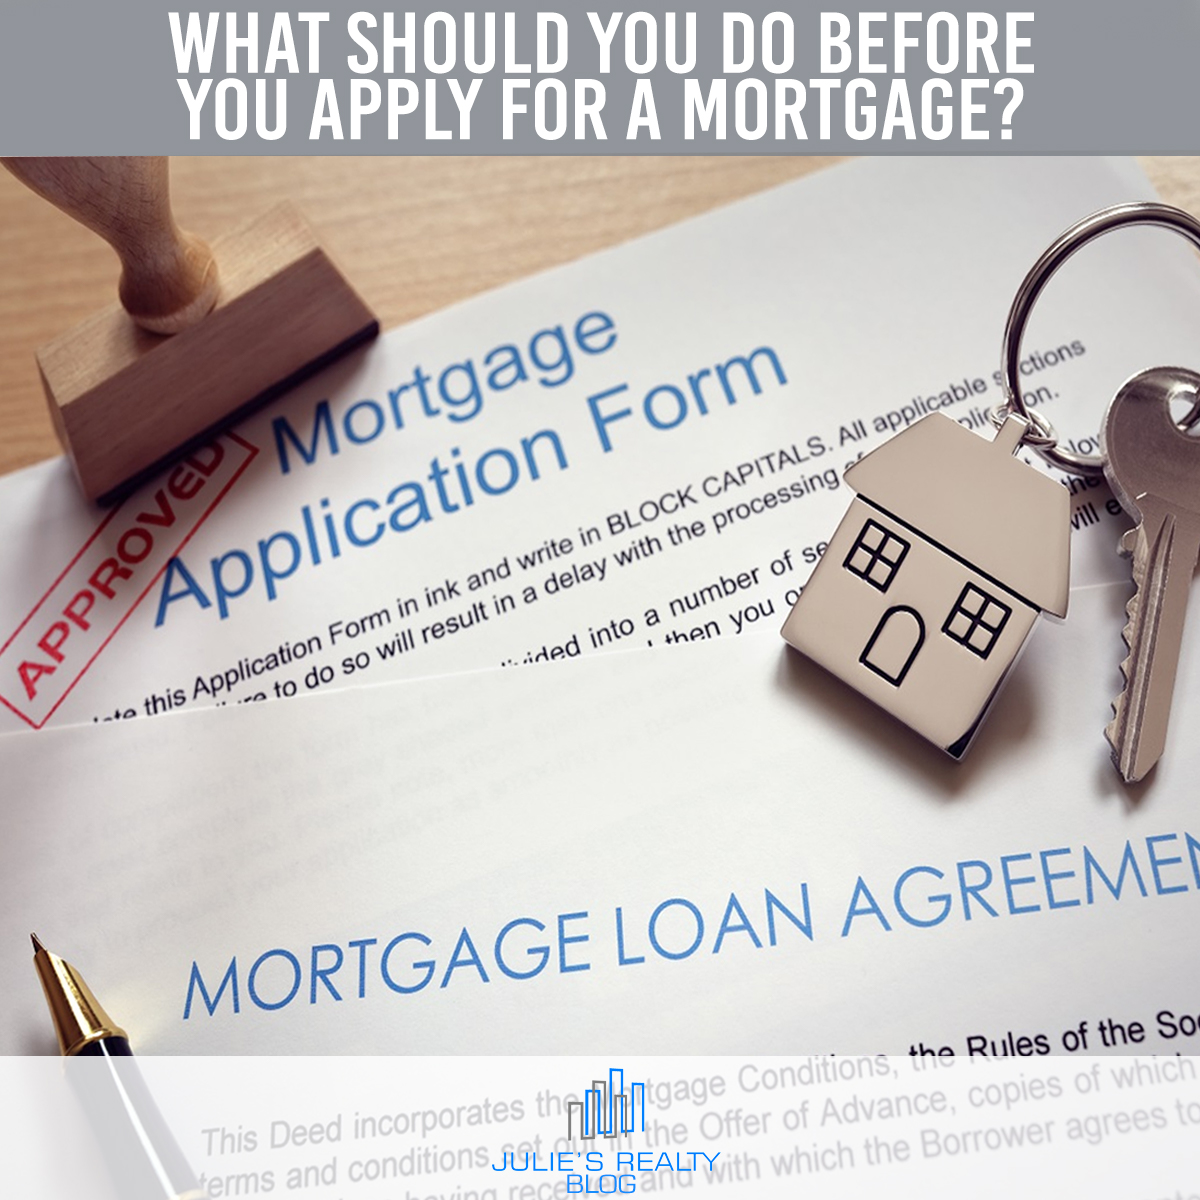 1113 Blog about Mortgages.jpg